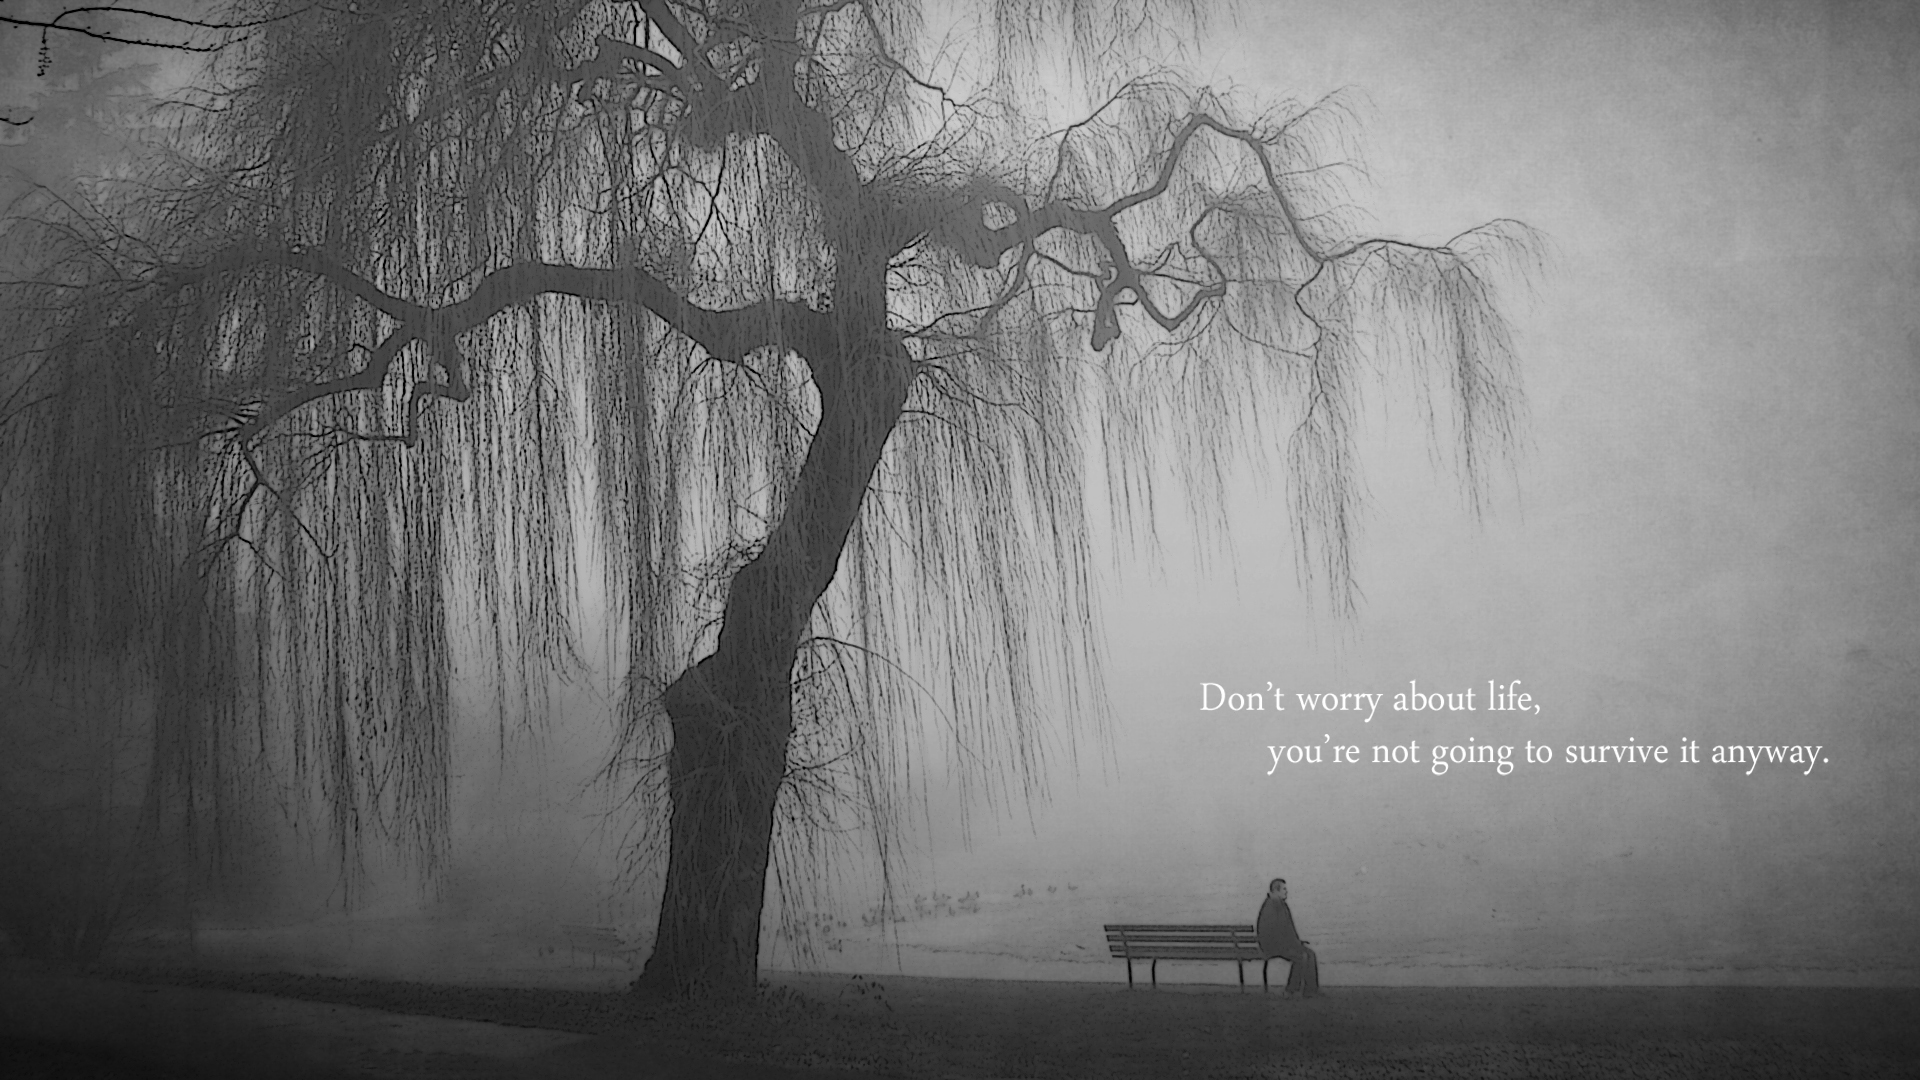 Quotes bench lonely grayscale